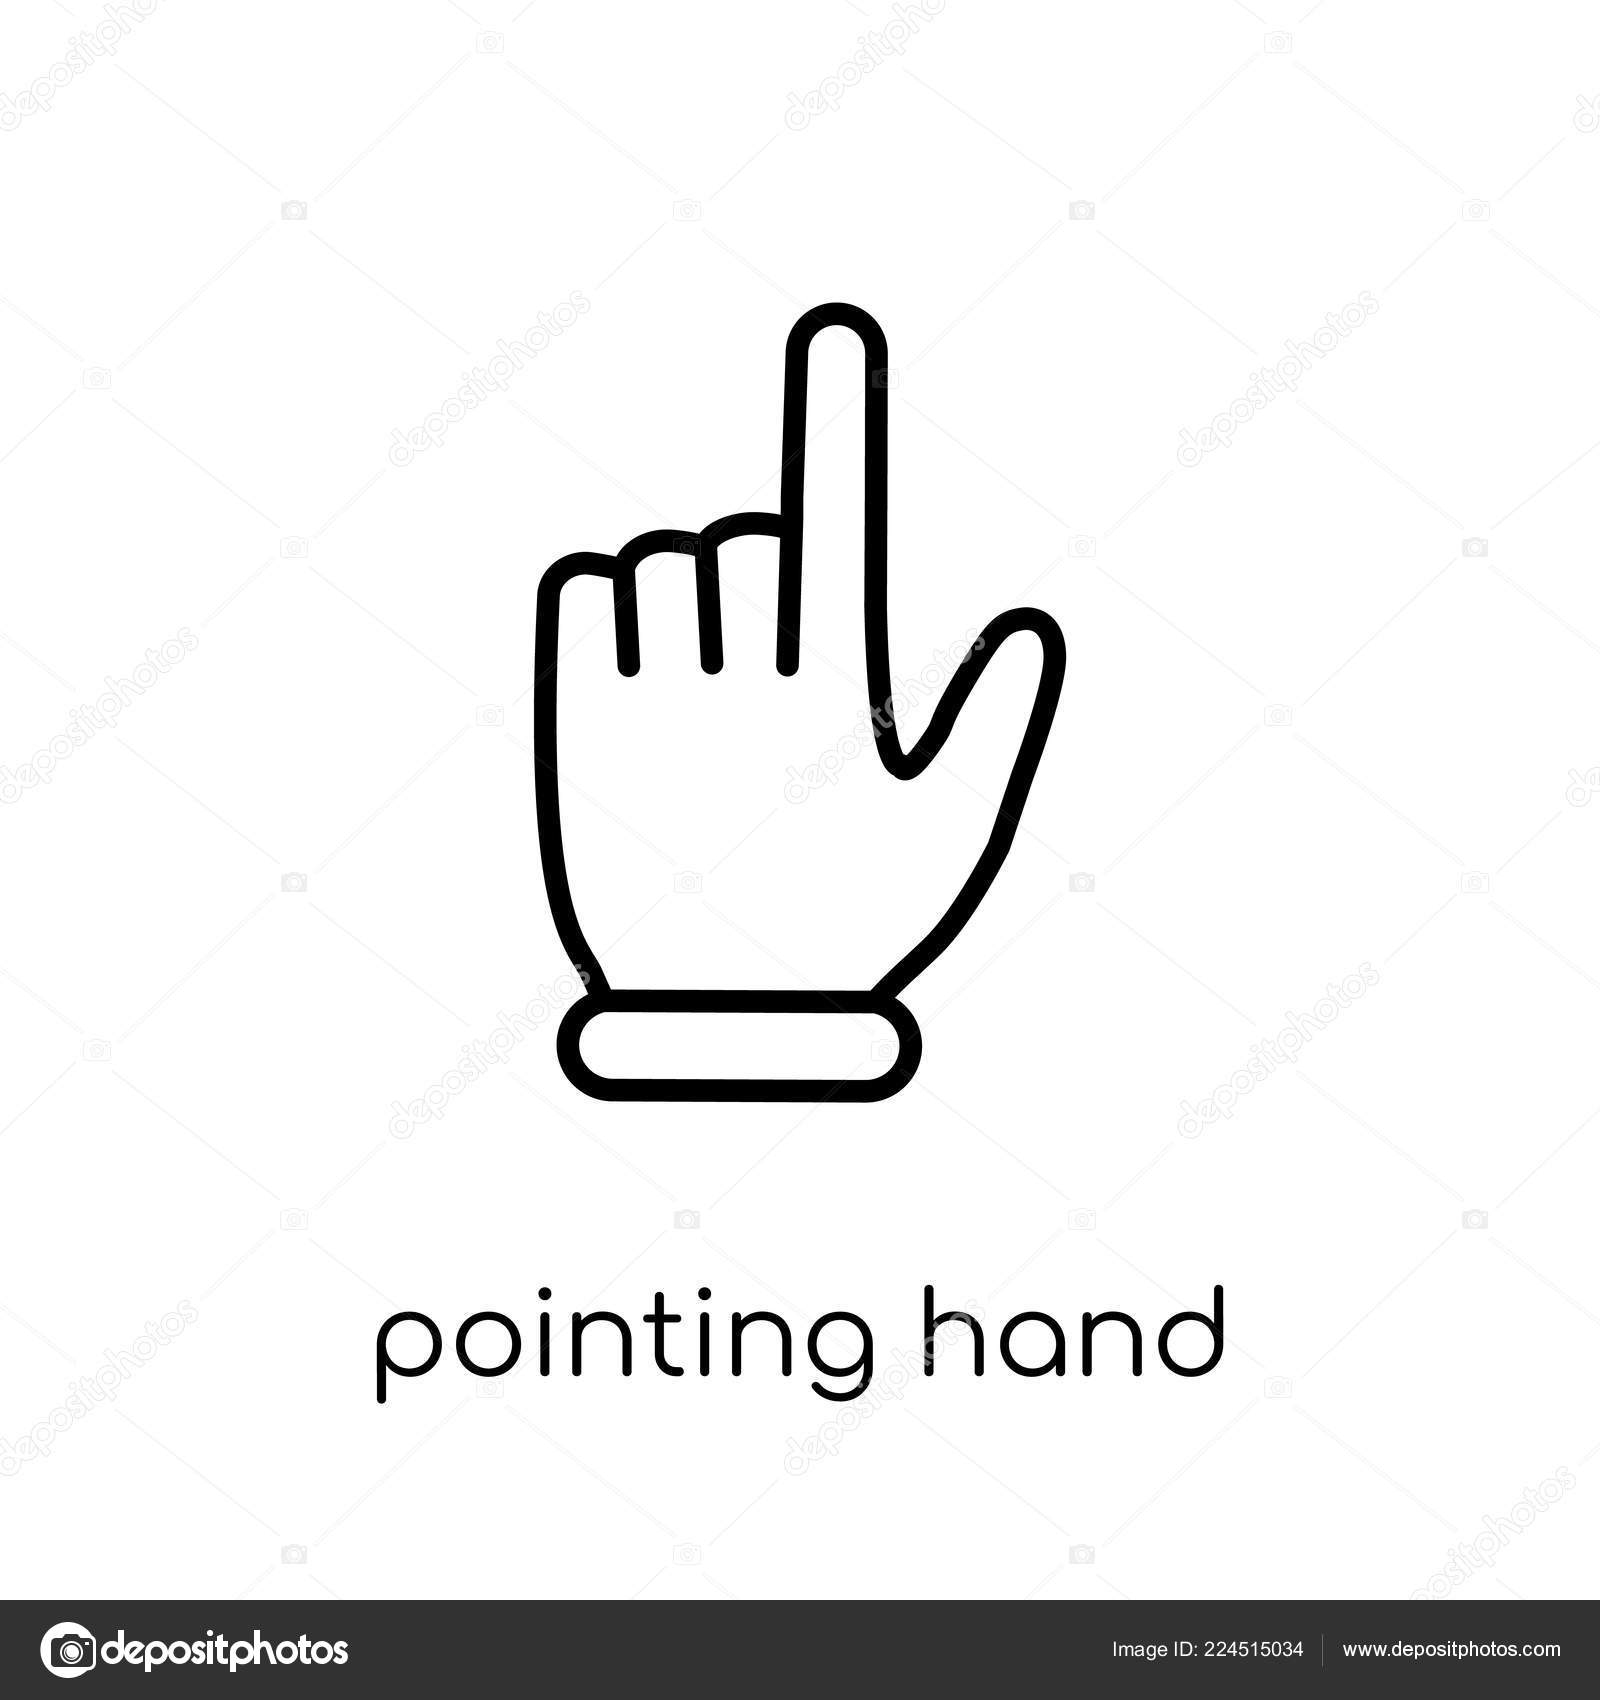 pointing hand icon trendy modern flat linear vector pointing hand stock vector c tvectoricons 224515034 https depositphotos com 224515034 stock illustration pointing hand icon trendy modern html